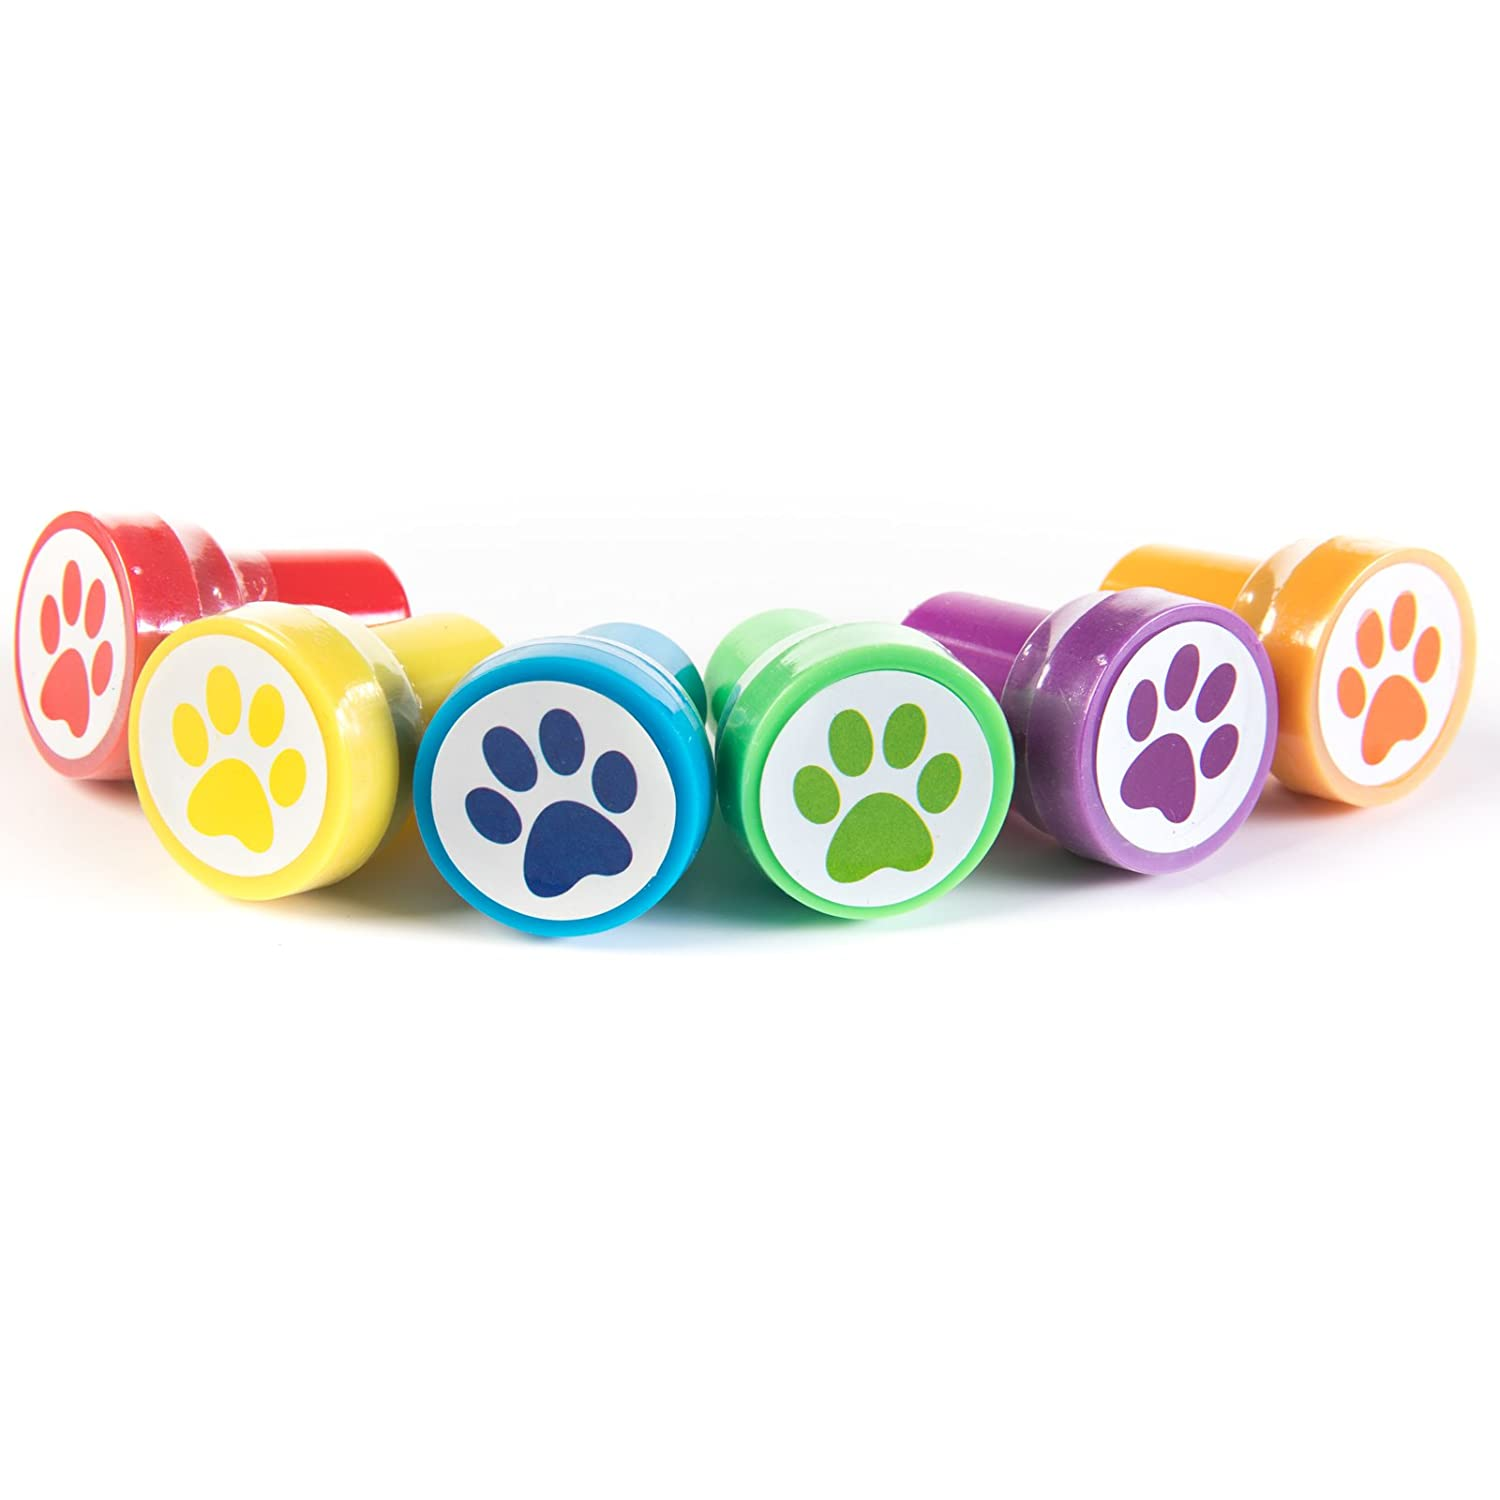 HUJI Paw Print Stampers 24 Pieces Birthday Supplies Bag Accessories Toys Classroom Teachers Reward Activities for Childrens Party Favors Birthday Parties School 24, Paw Print Stampers